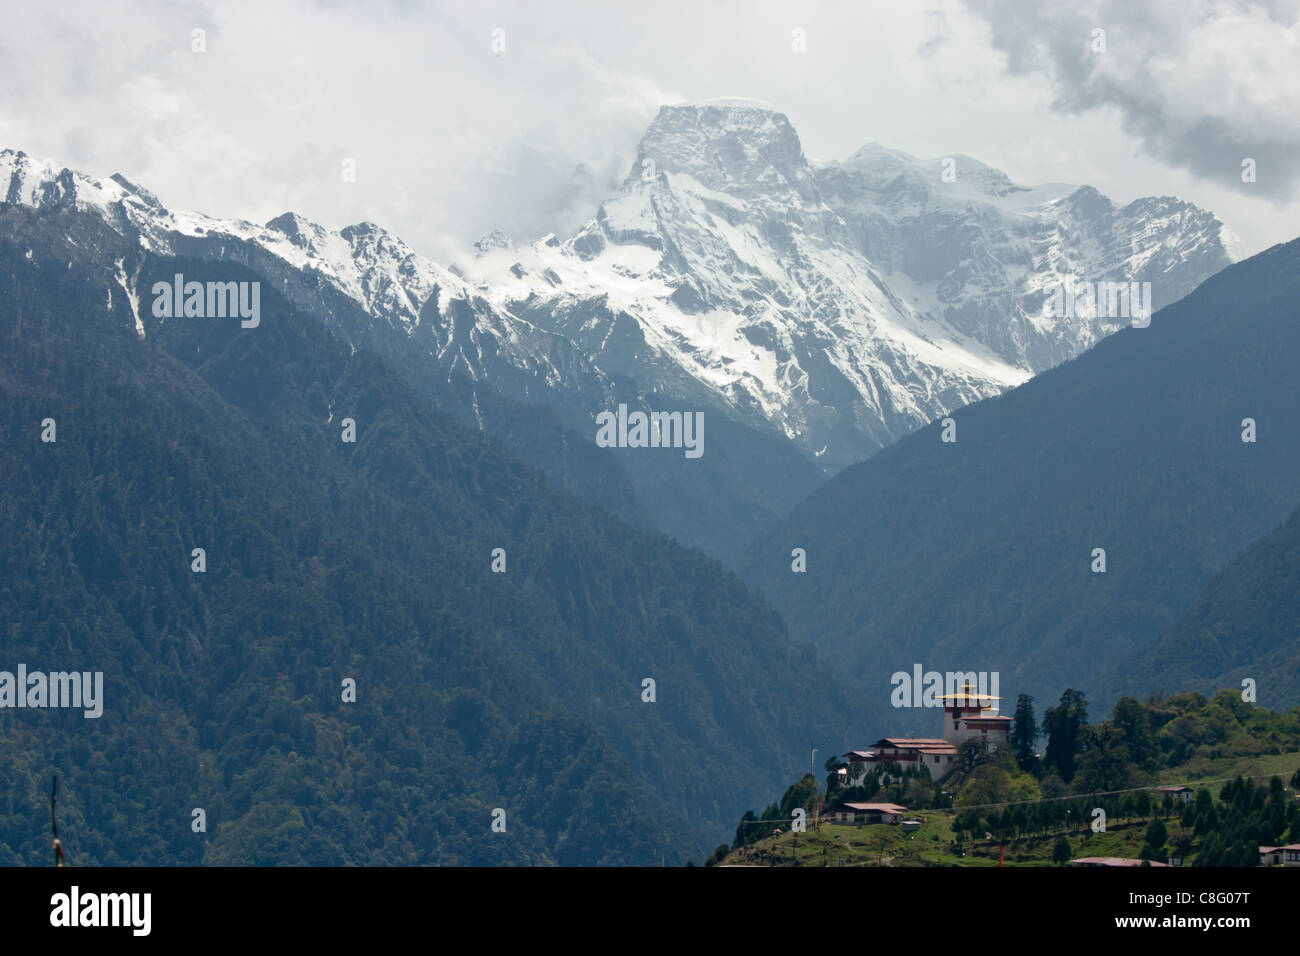 Gasa dzong in foreground with snow covered mountain range in background - Stock Image